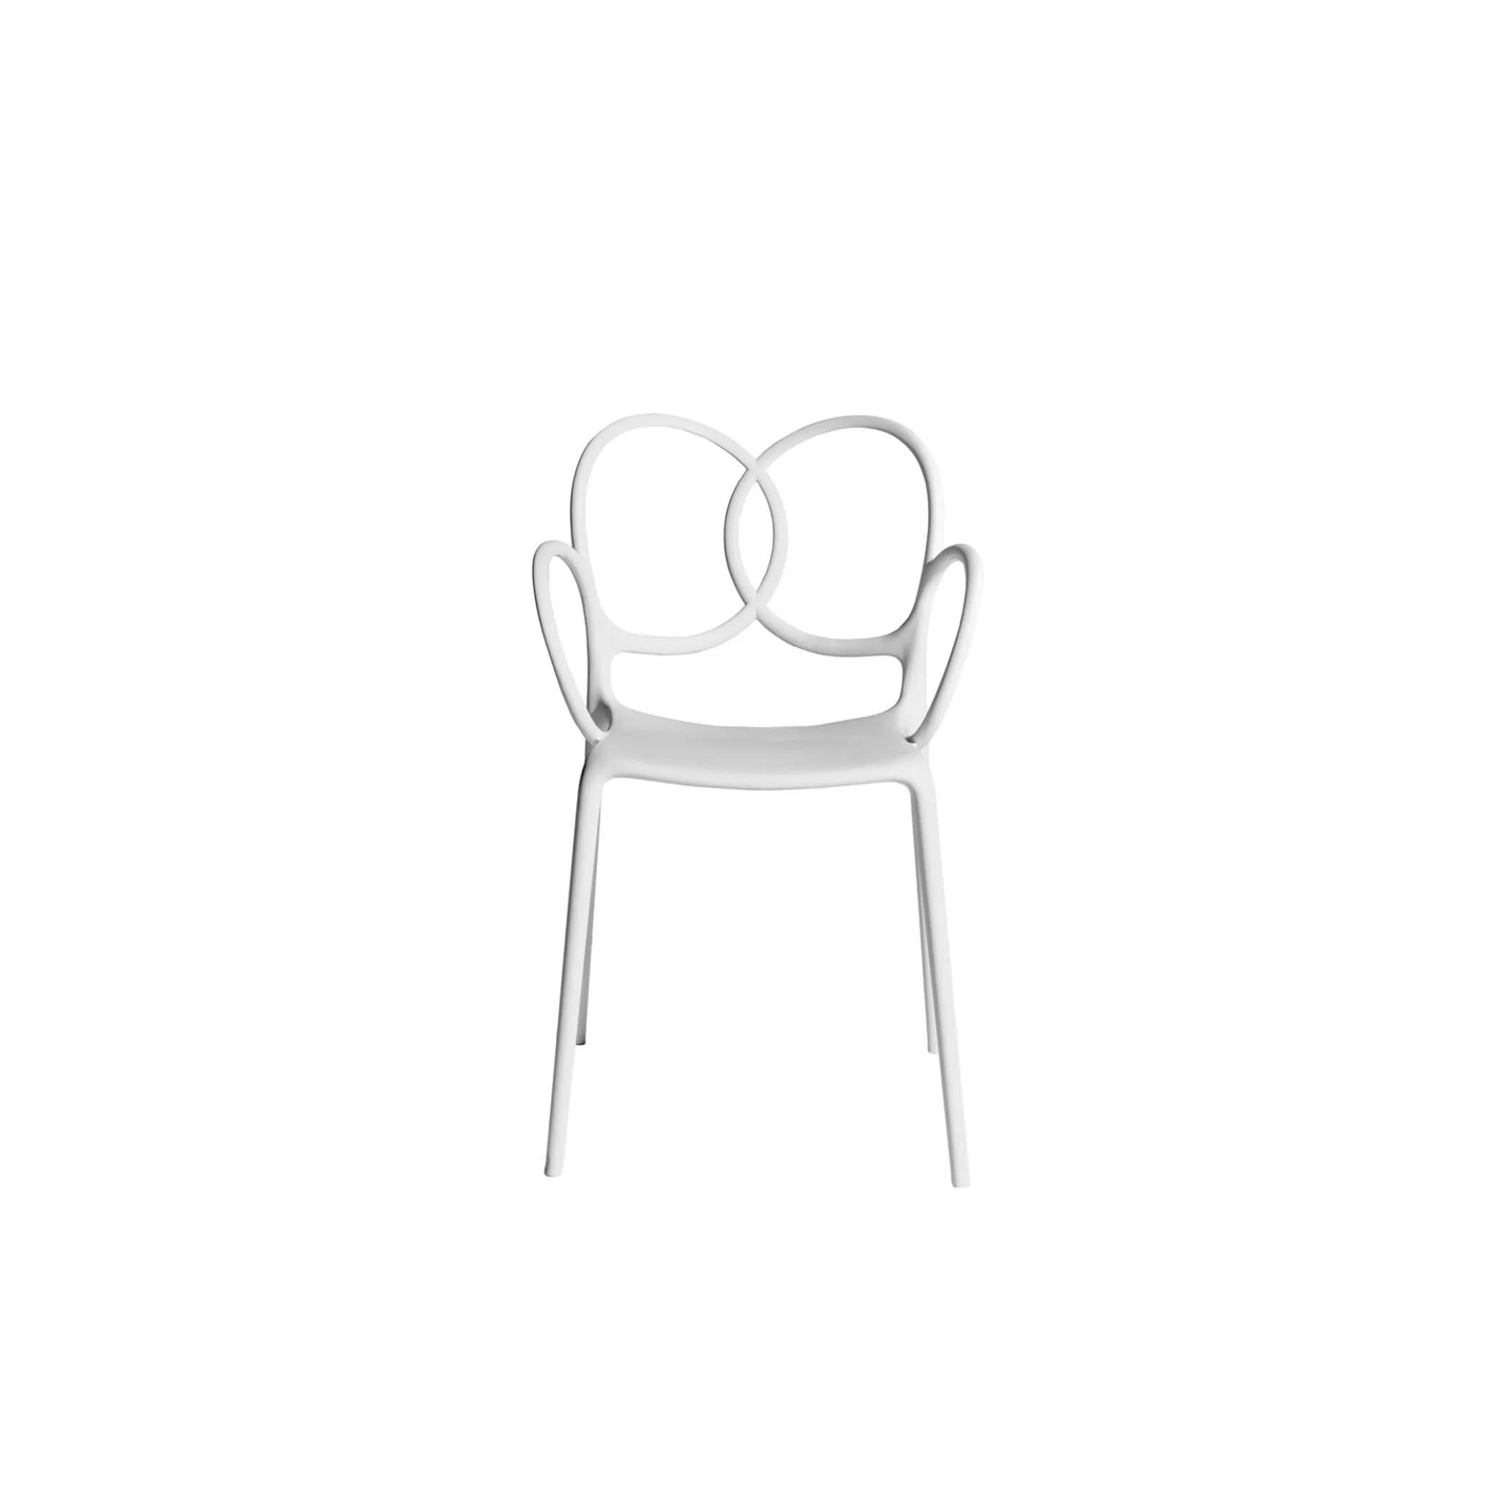 "Sissi Armchair - Sissi is a sculptural, very versatile, self- centred and contemporary piece. ""Its modern design winks cheekily at the past and at the female world. The merging and intersecting rings look as if they have been bent by the hand of the viennese craftsmen, whom since over a century ago, would offer the world an elegant and design archetype. The connections, linked in such a sensual way, turn sissi into a refined and sculptural piece, just like the ultimate viennese chair - famous for its wooden curves- it is inspired by. Just like a confident, self-assured women changes her clothes to suit her mood, this chair is complemented by an essential part of its design, the seat cover.""